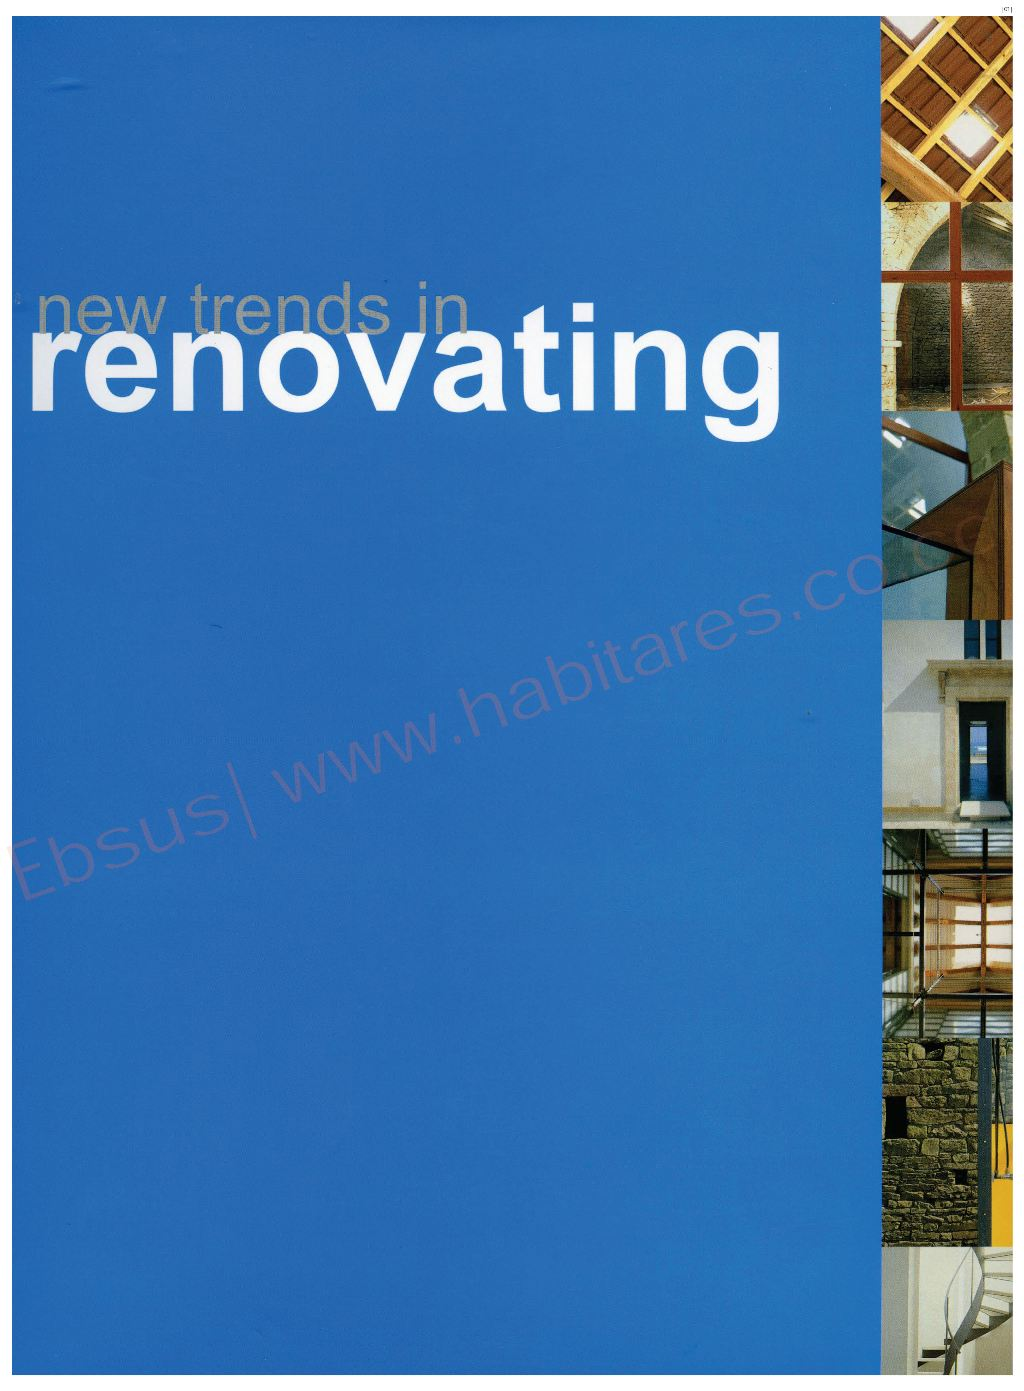 Http Architecture Landscape Blogspot Co Uk 2010 05 New Trends In Renovating Html